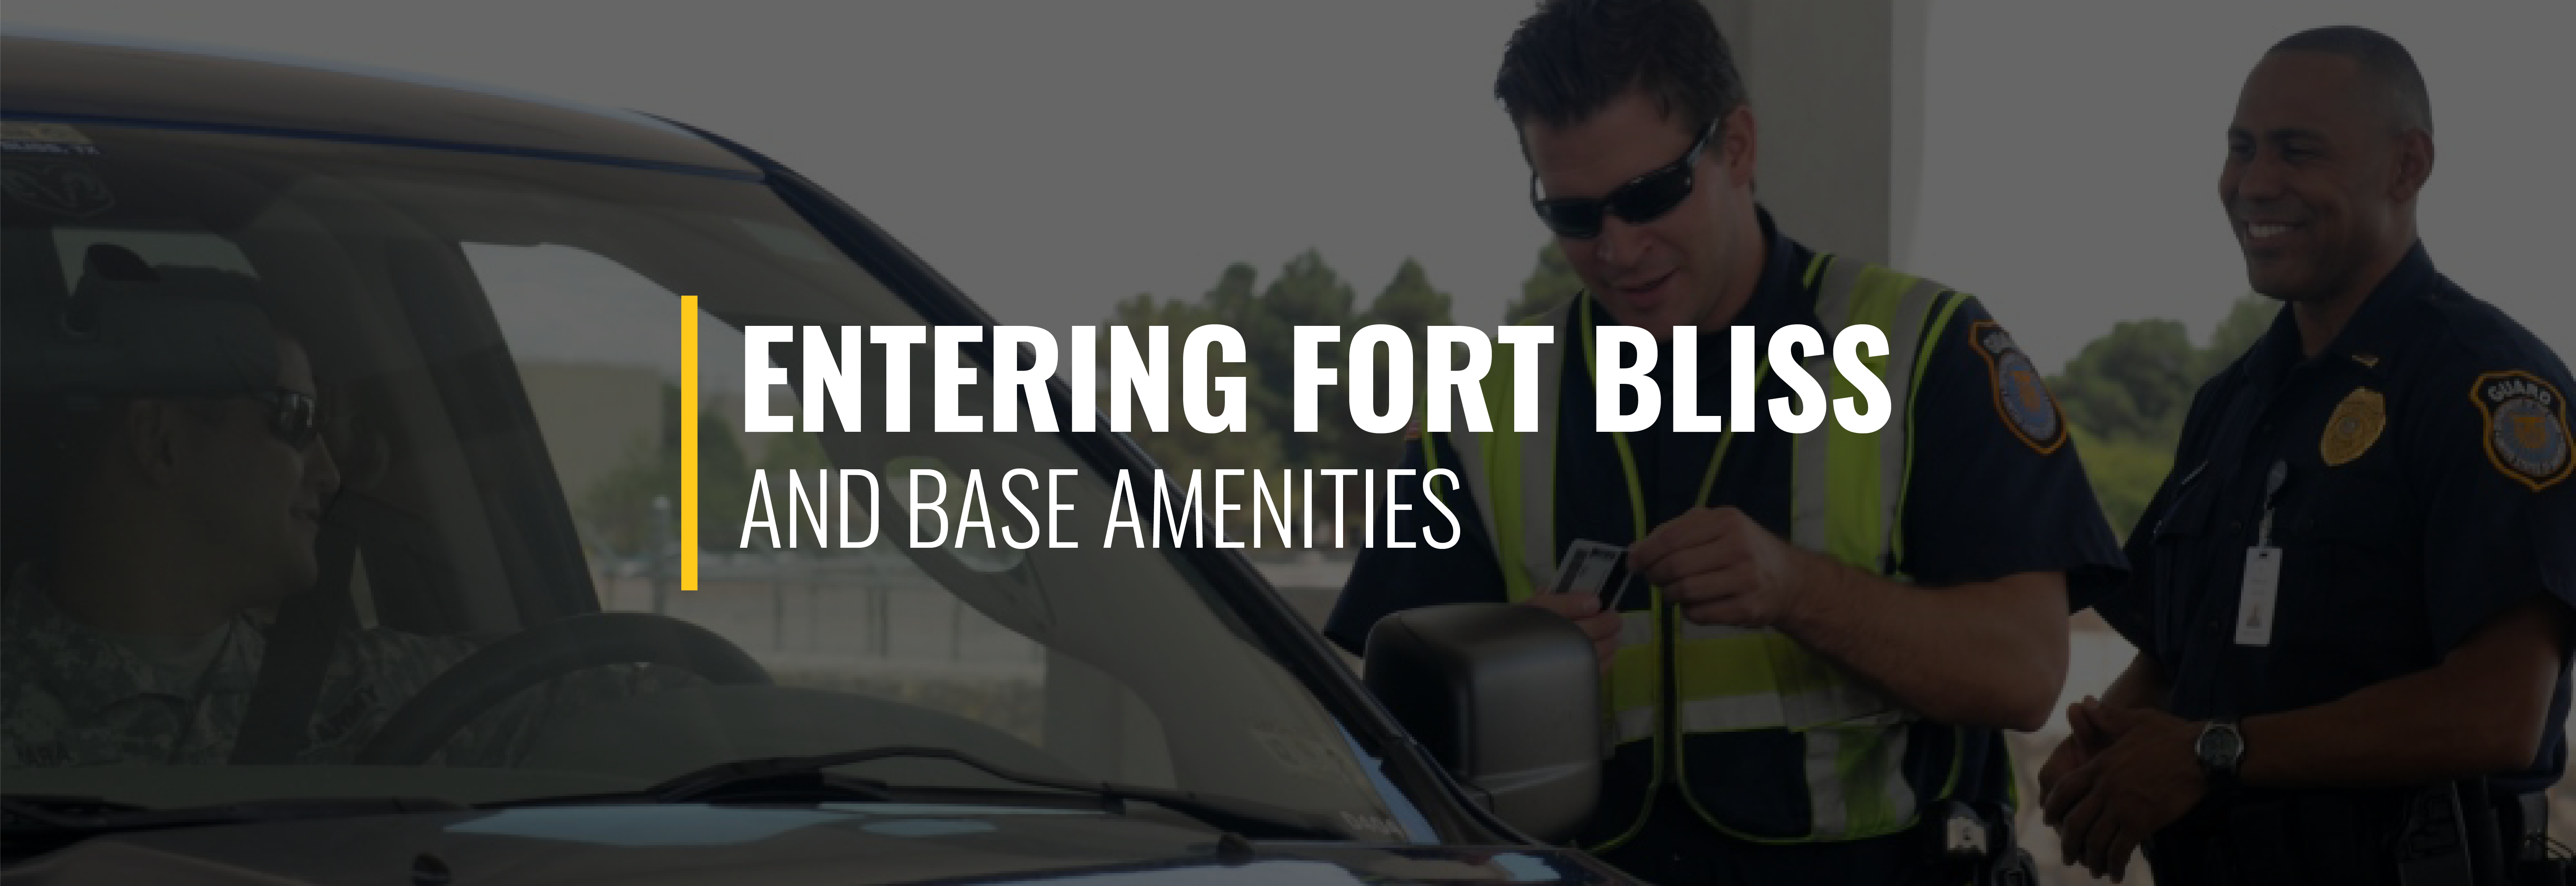 Entering Fort Bliss and Base Amenities